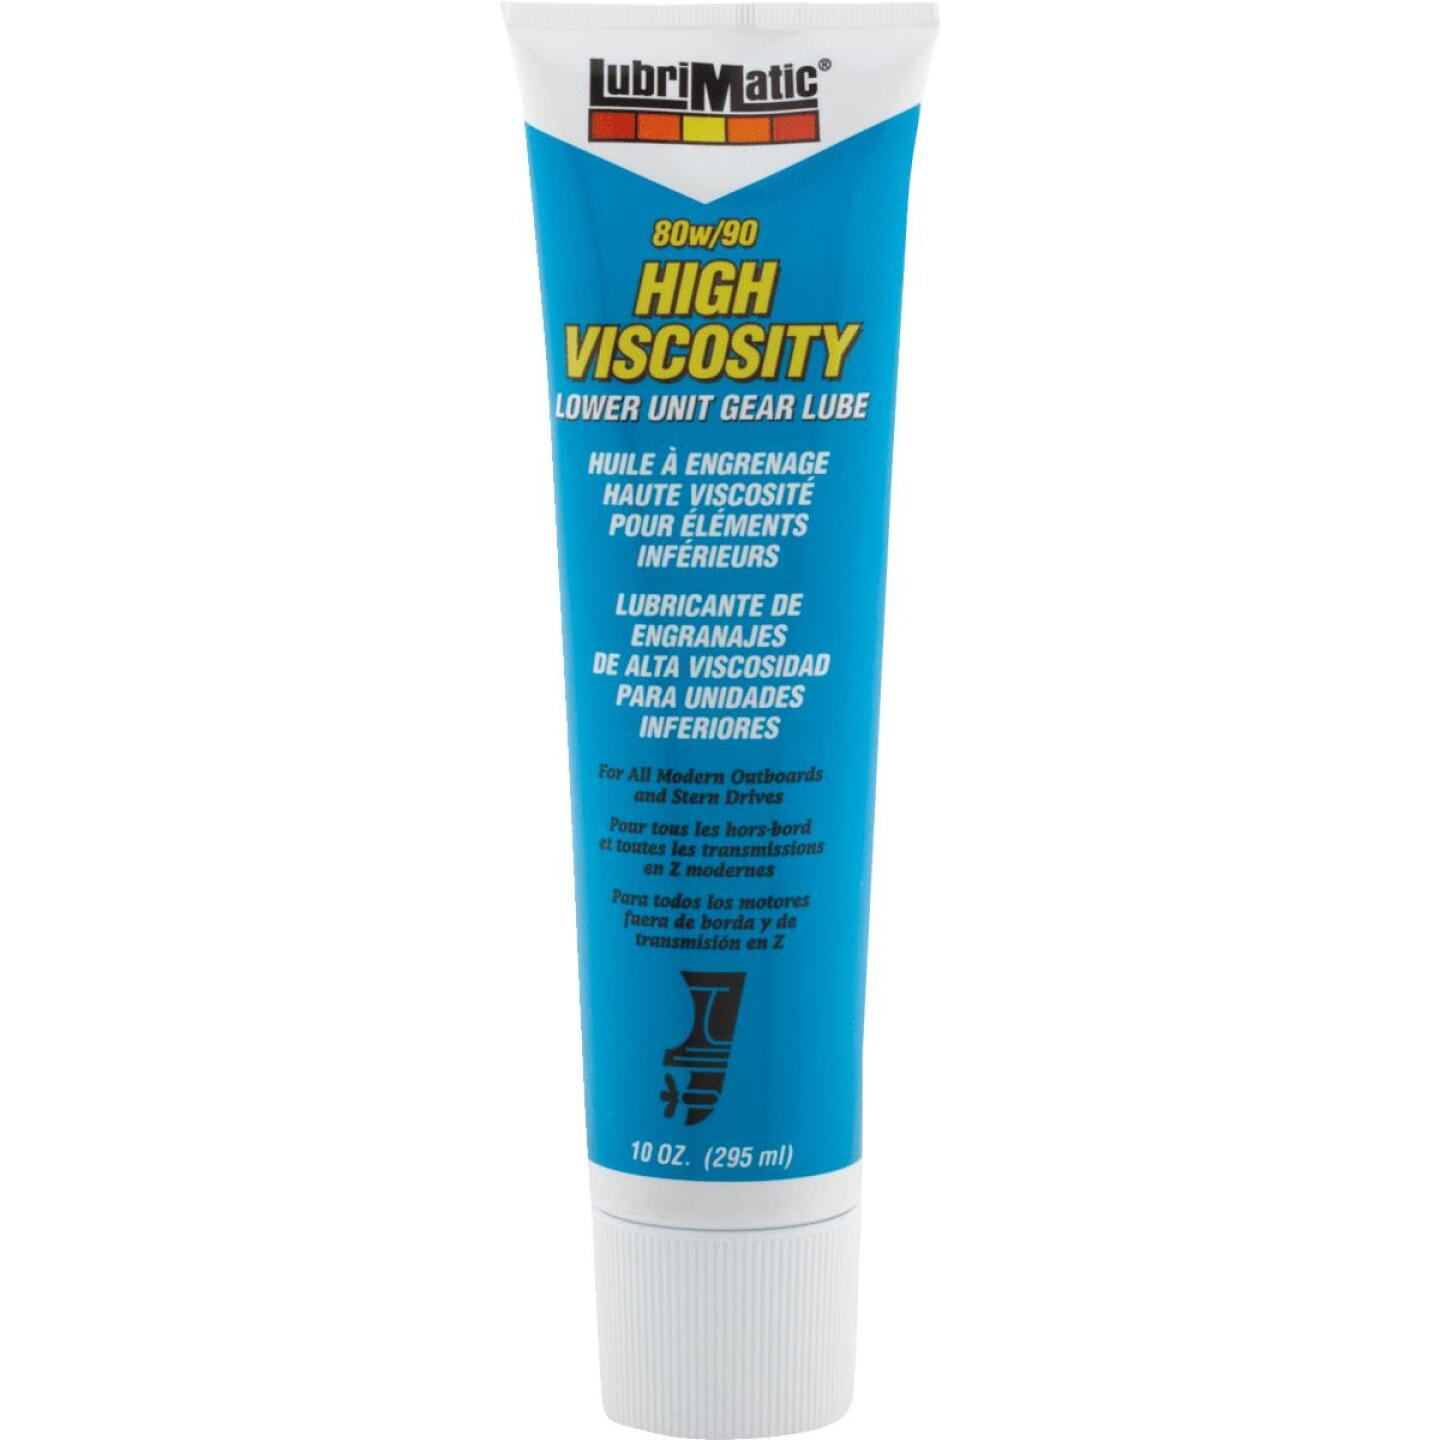 LubriMatic 10 Oz. 80W90 Lower Unit Gear Oil Lube Image 1